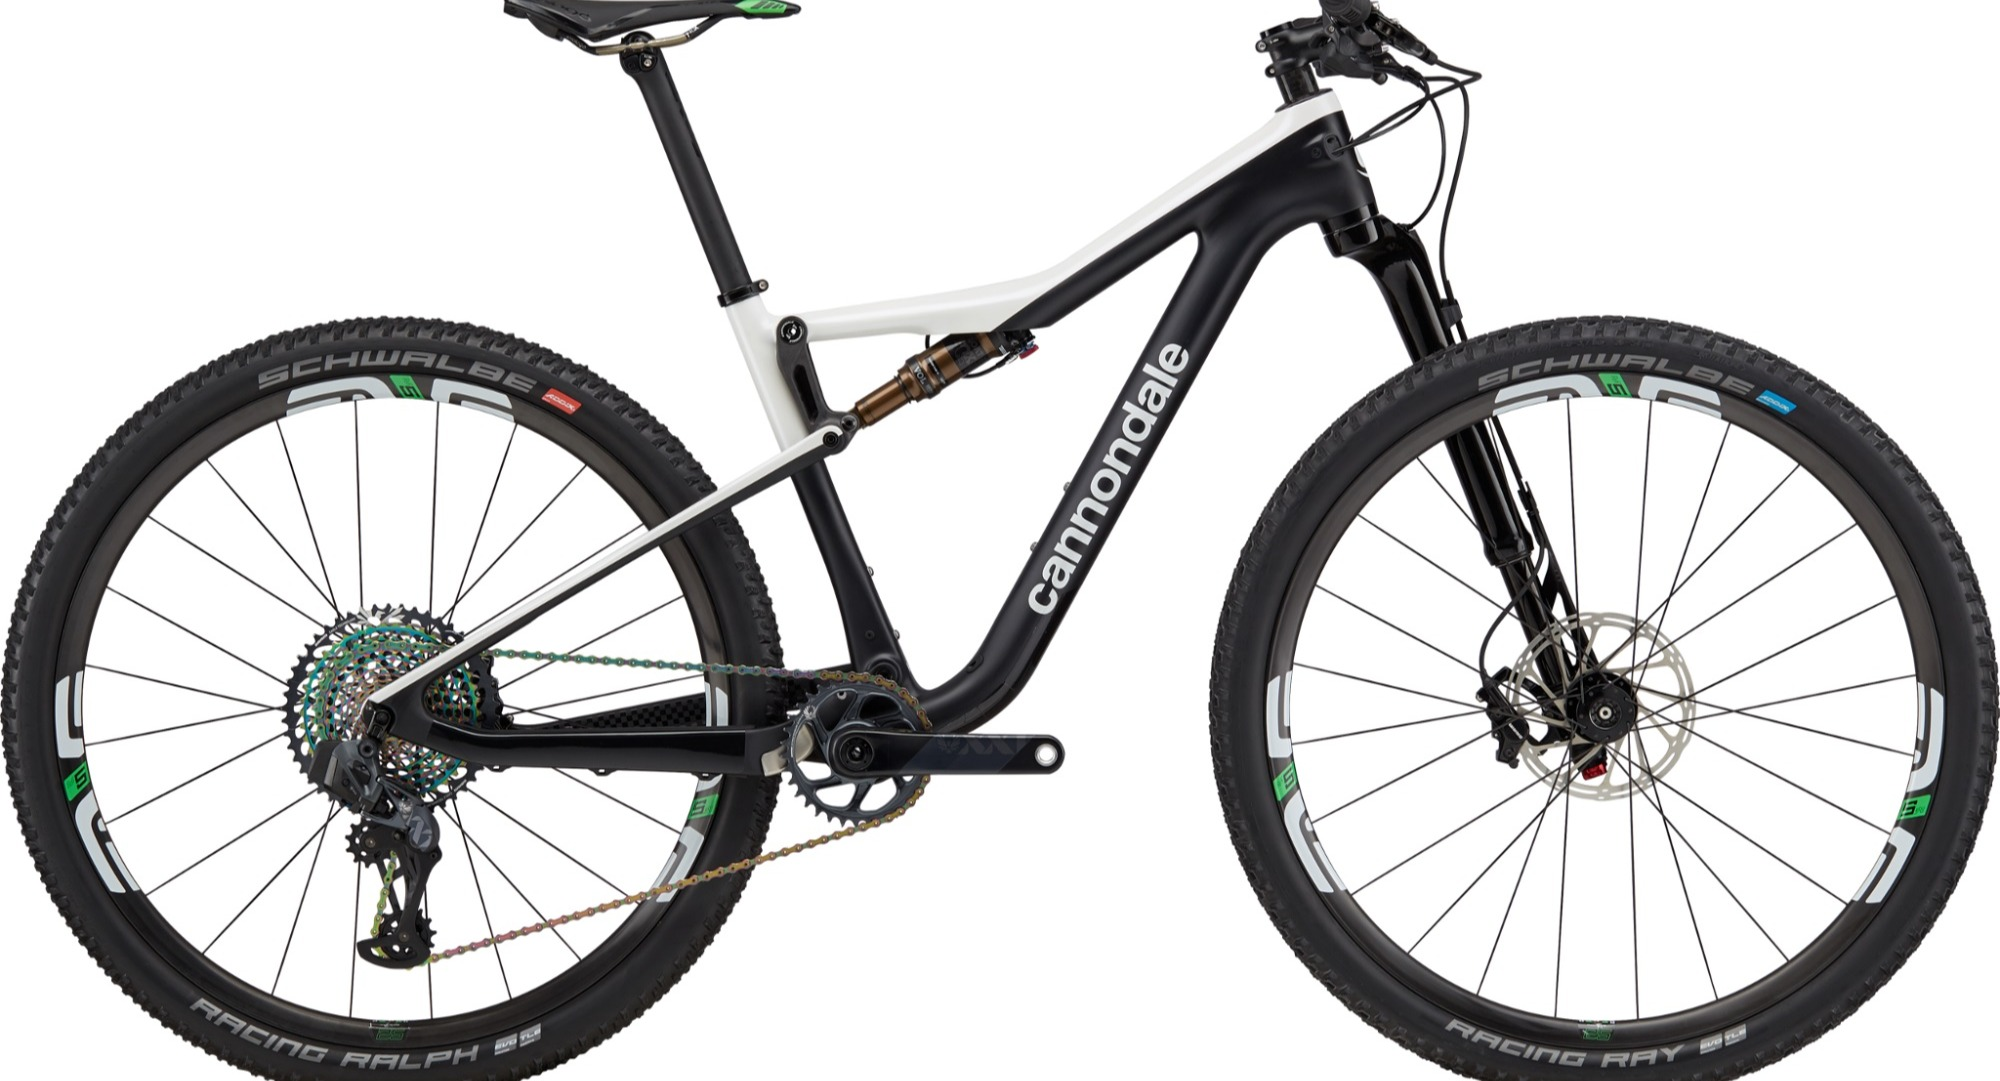 Cannondale Scalpel-Si Hi-Mod World Cup full Suspesion MTB